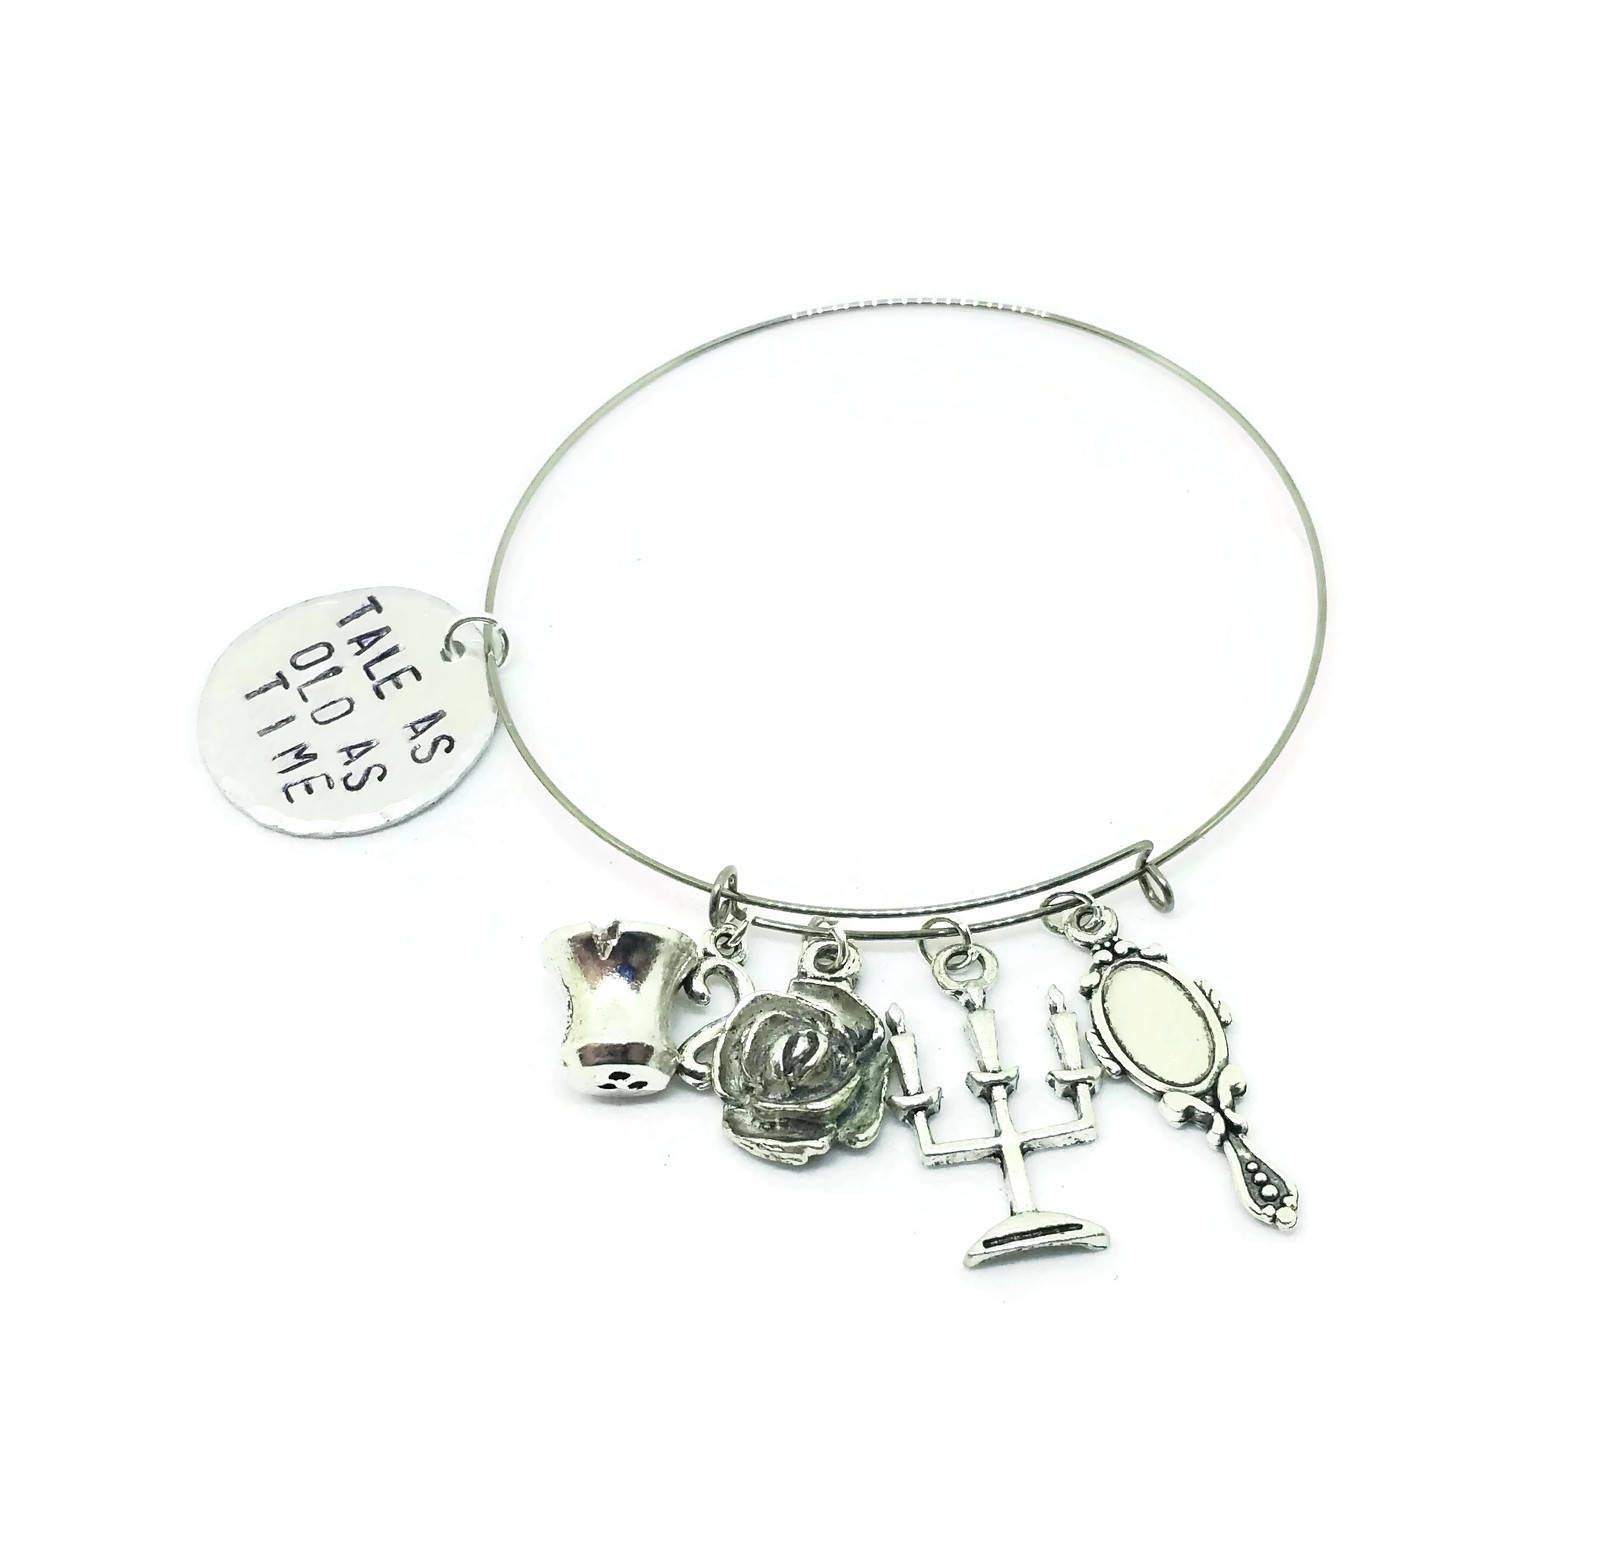 Tale as Old as Time Adjustable Charm Bracelet Beauty and the